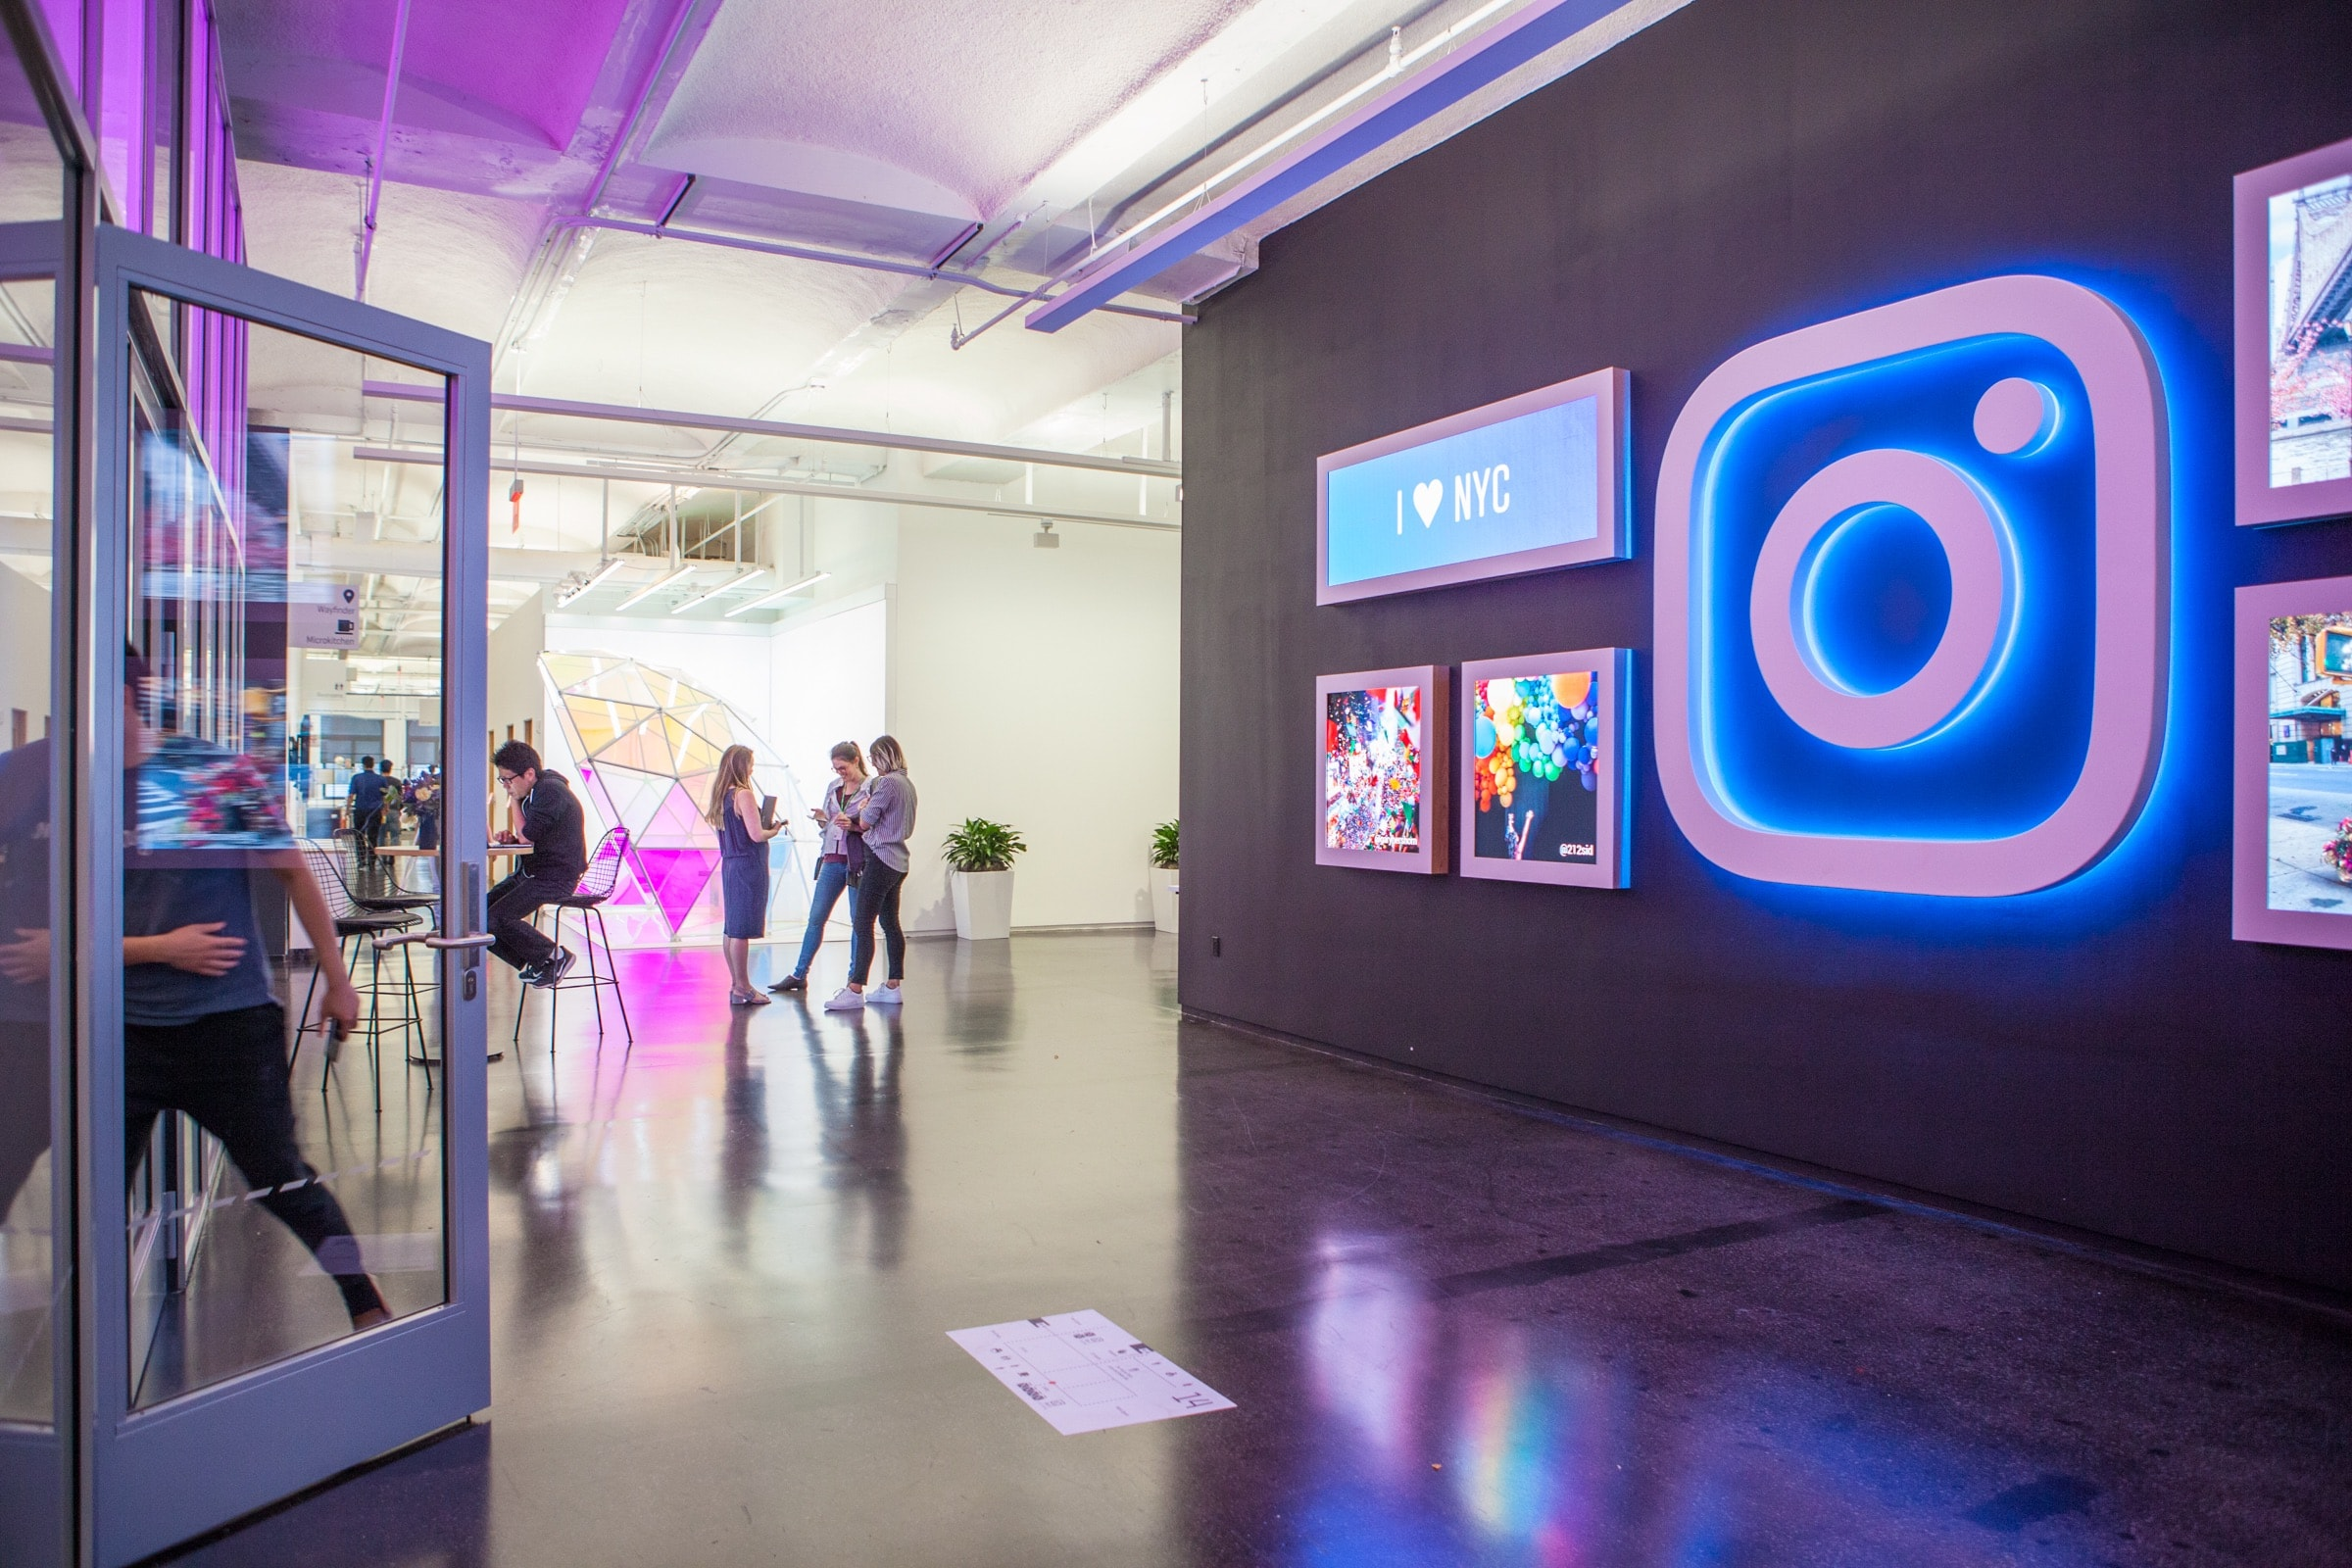 Instagram Unveils Their New Insta-Worthy NYC Headquarters